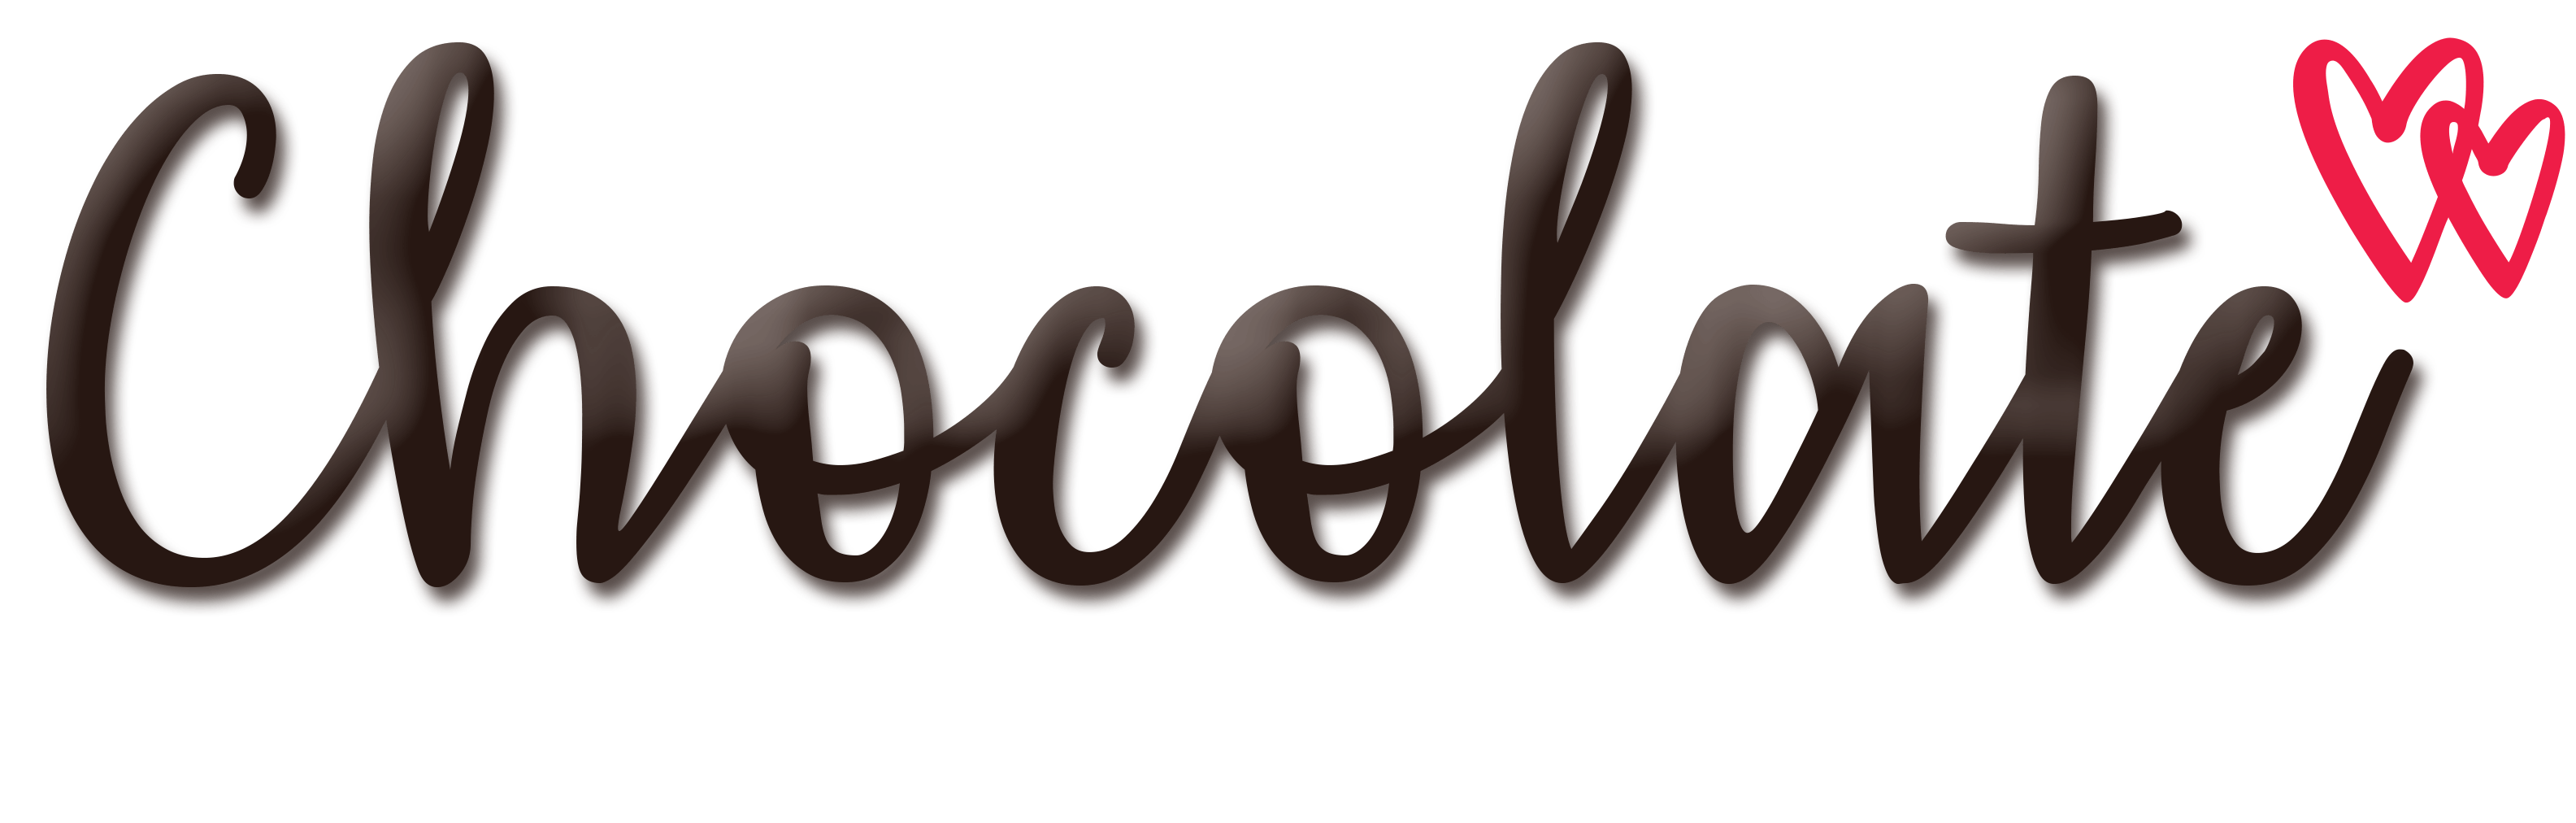 Chocolate Workshop Parties